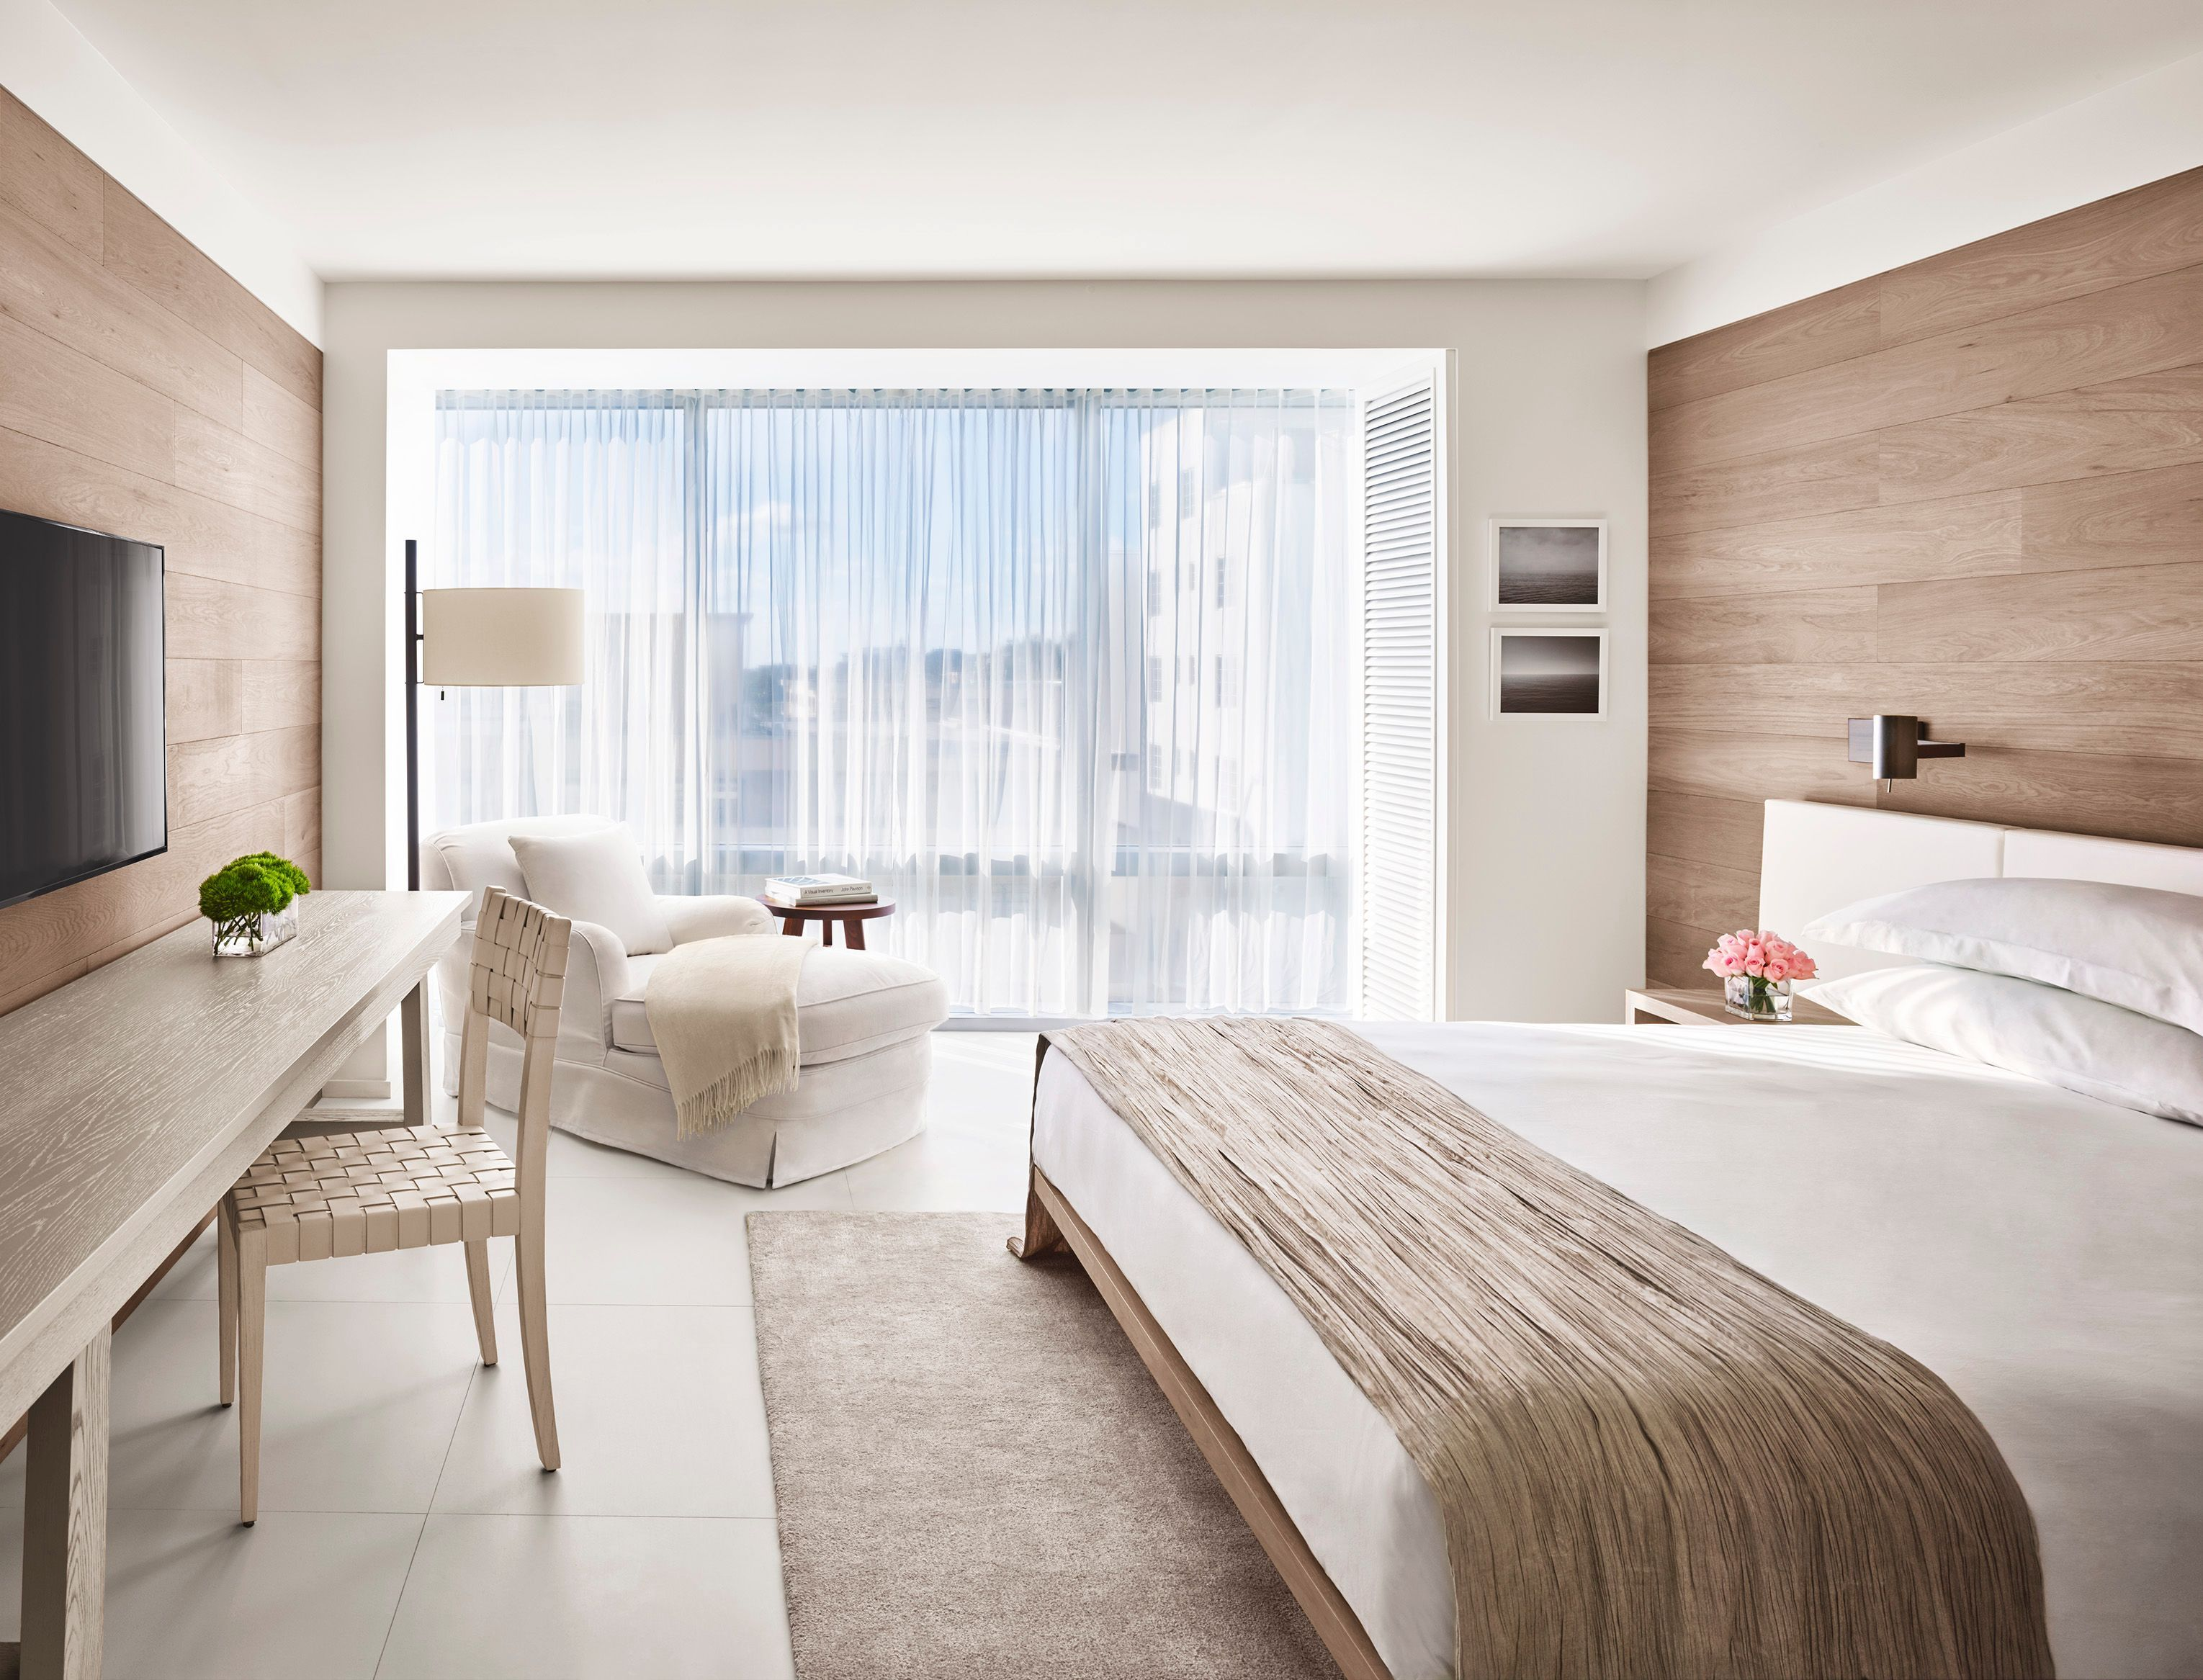 Yabu pushelberg the miami beach edition bedroom luxury for Great small luxury hotels